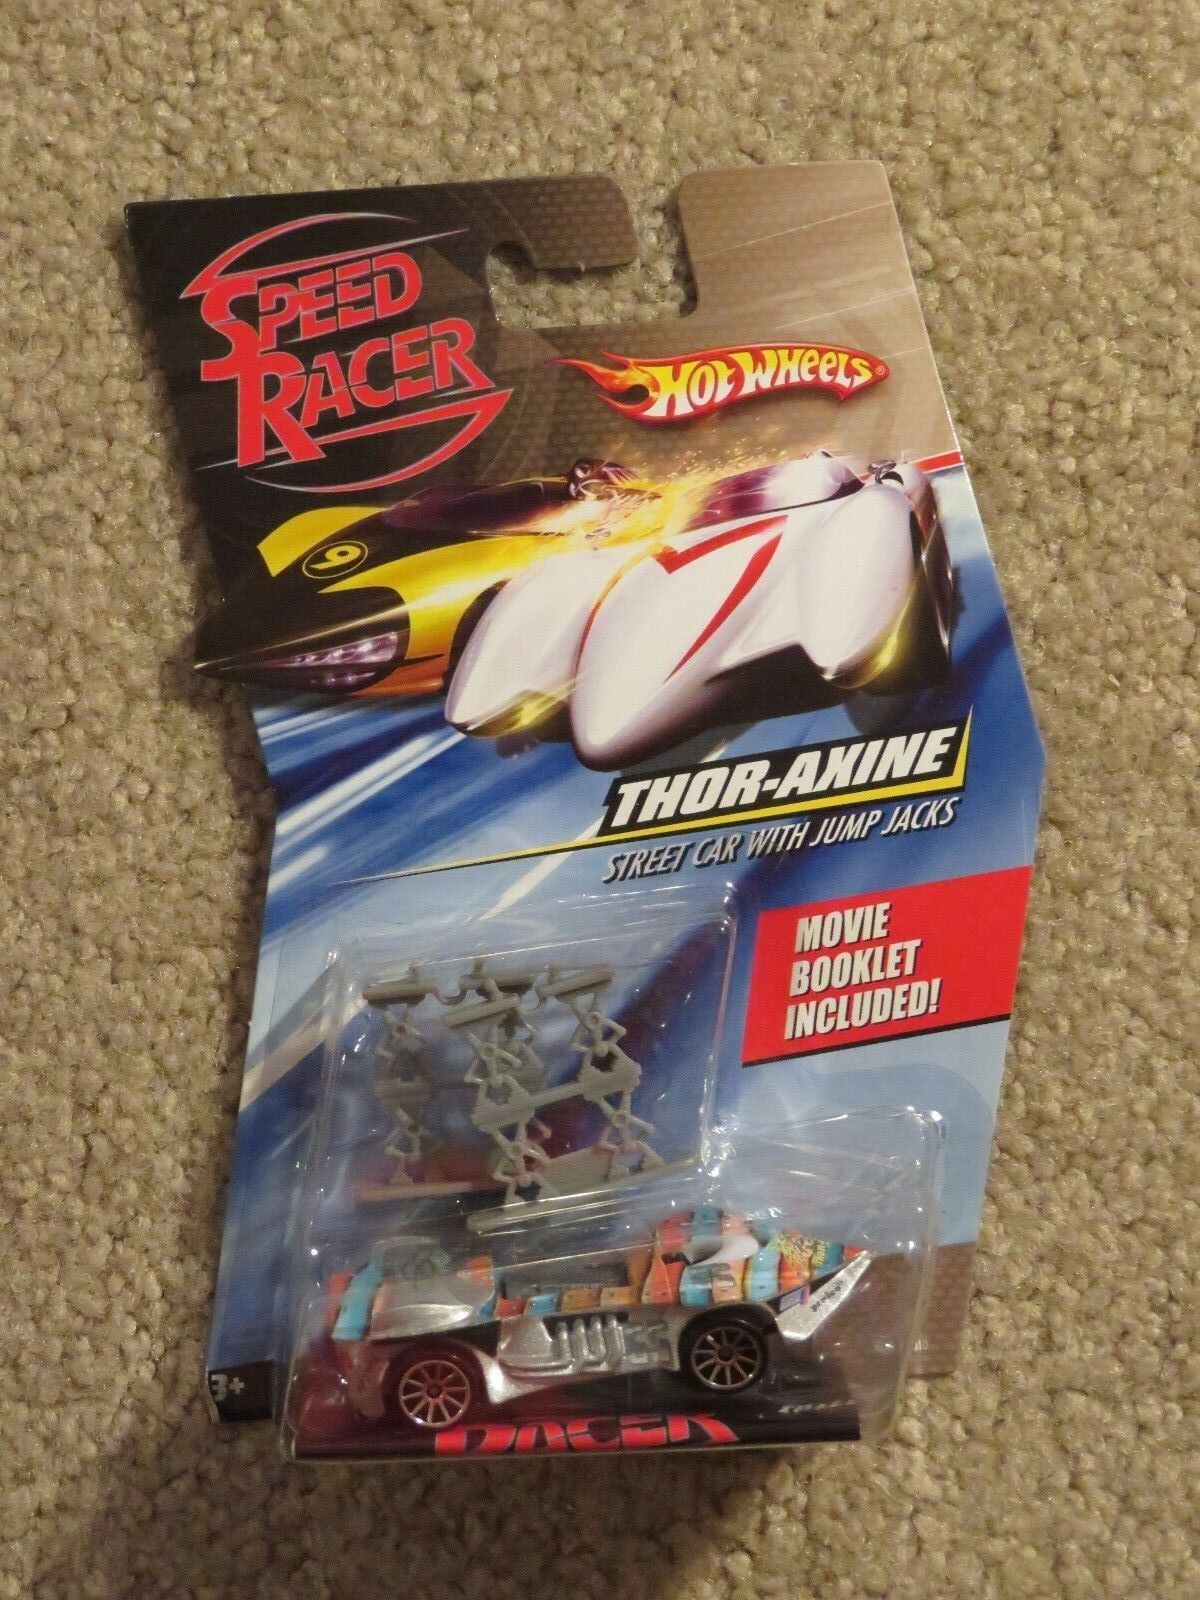 Hot Wheels Speed Racer Thor Axine 1 64 Scale MOC 2007